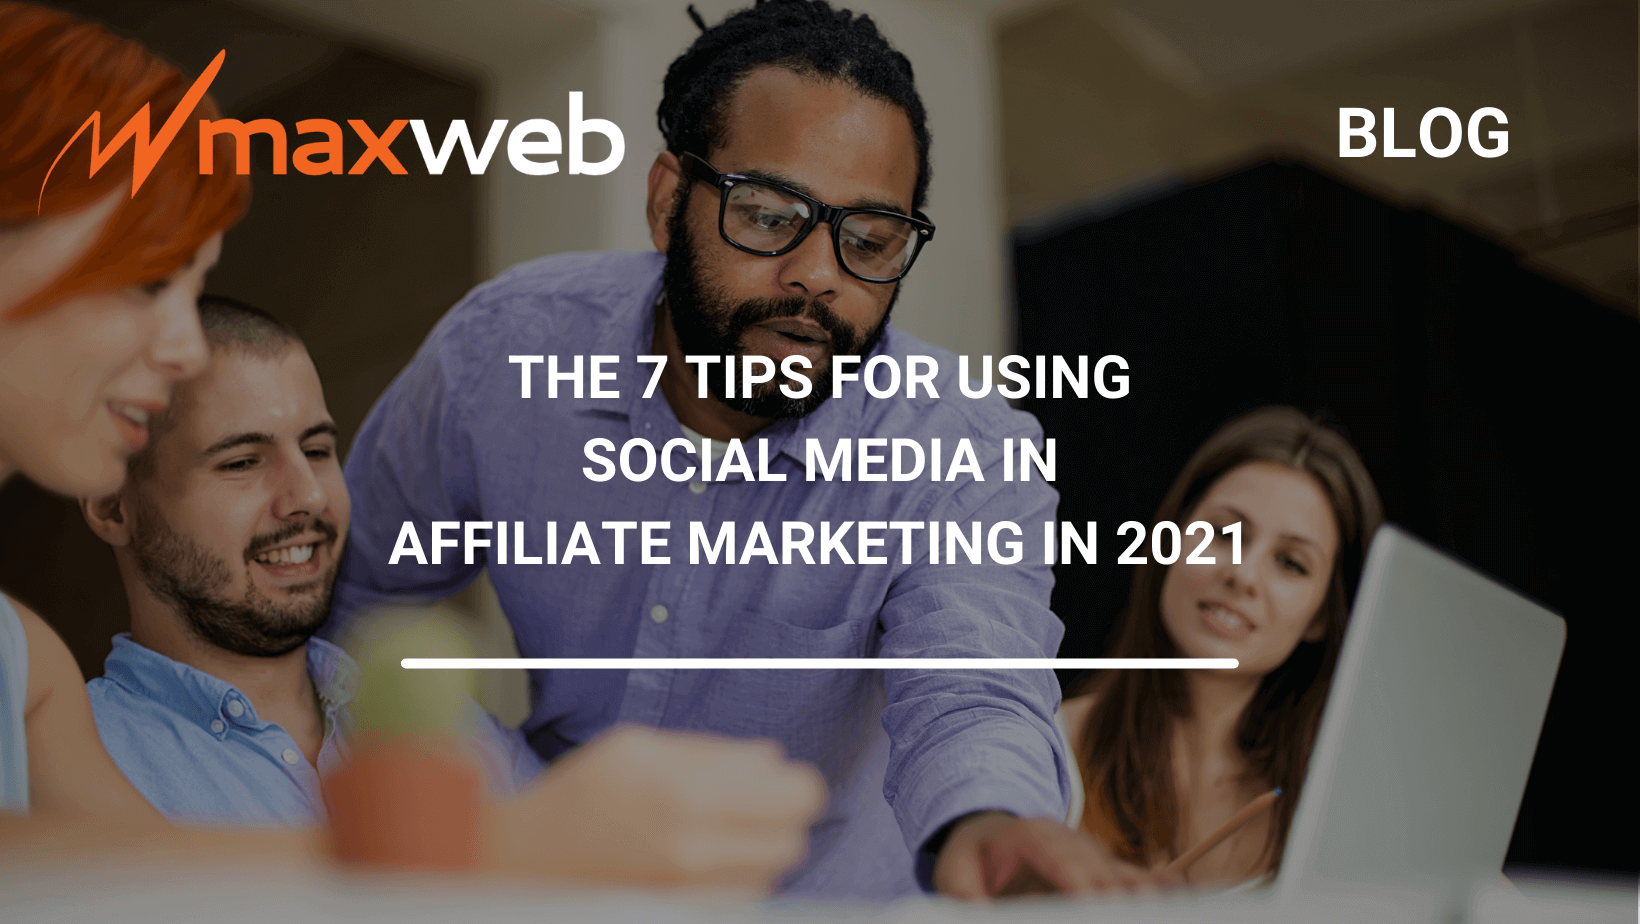 The 7 Tips For Using Social Media In Affiliate Marketing in 2021